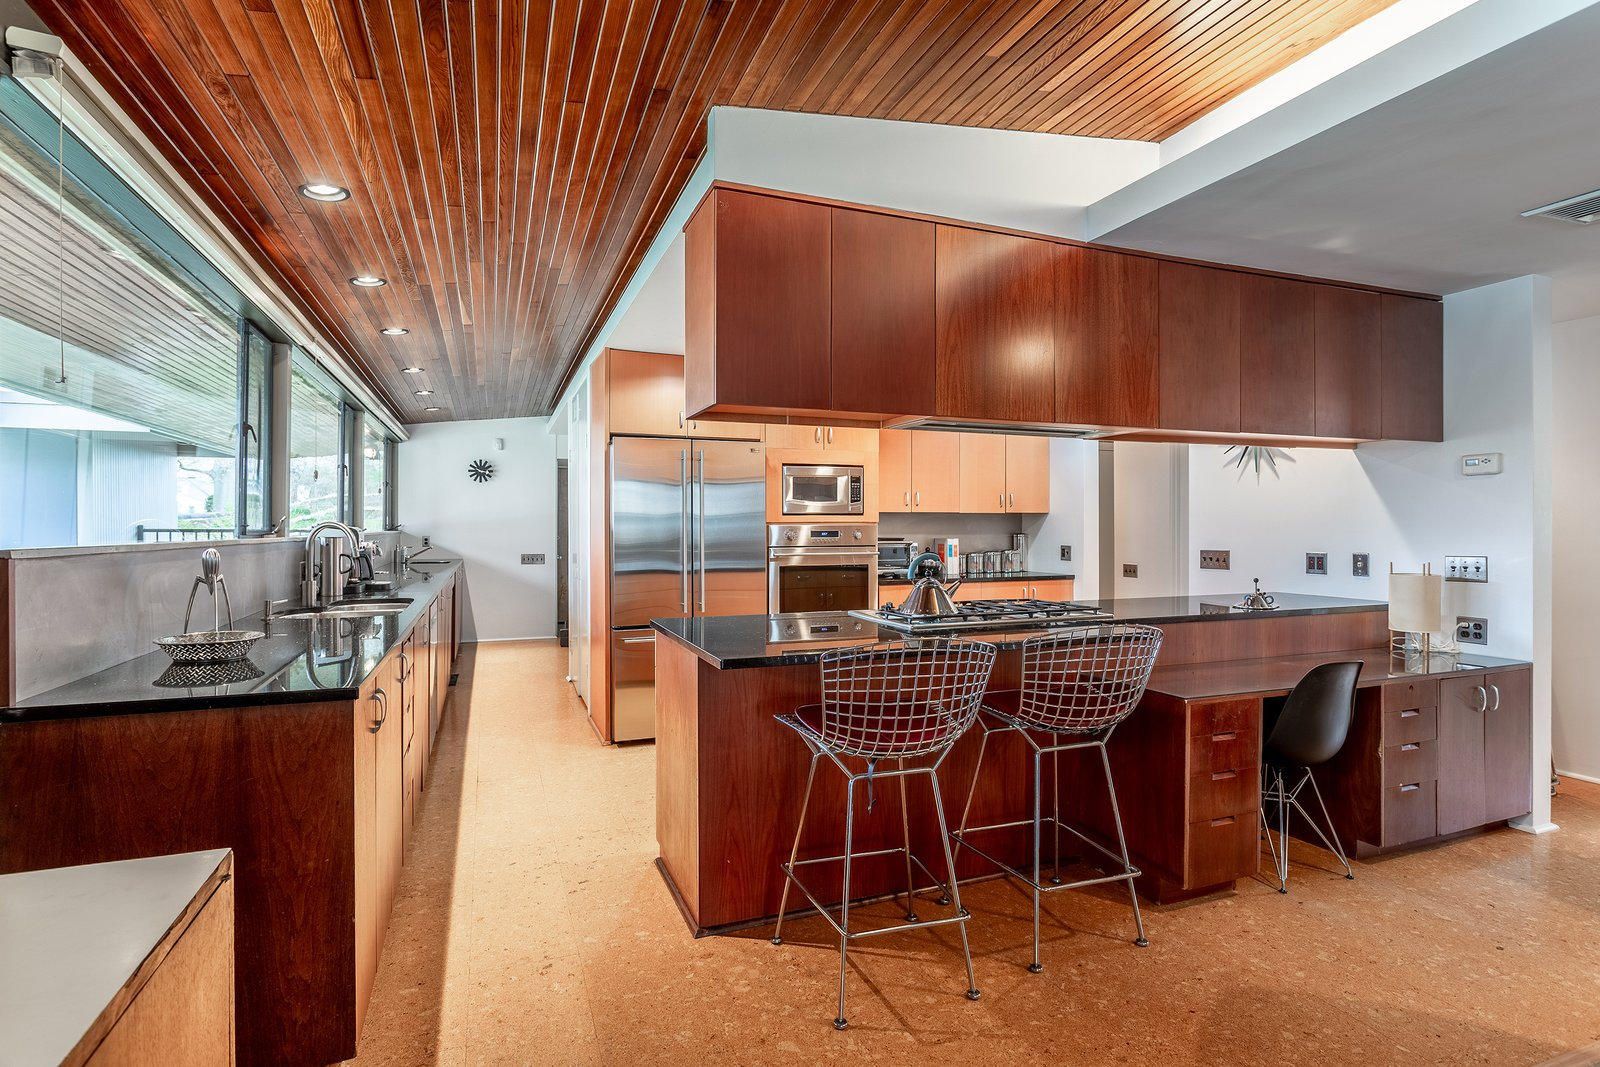 Miller Philadelphia Neutra House kitchen